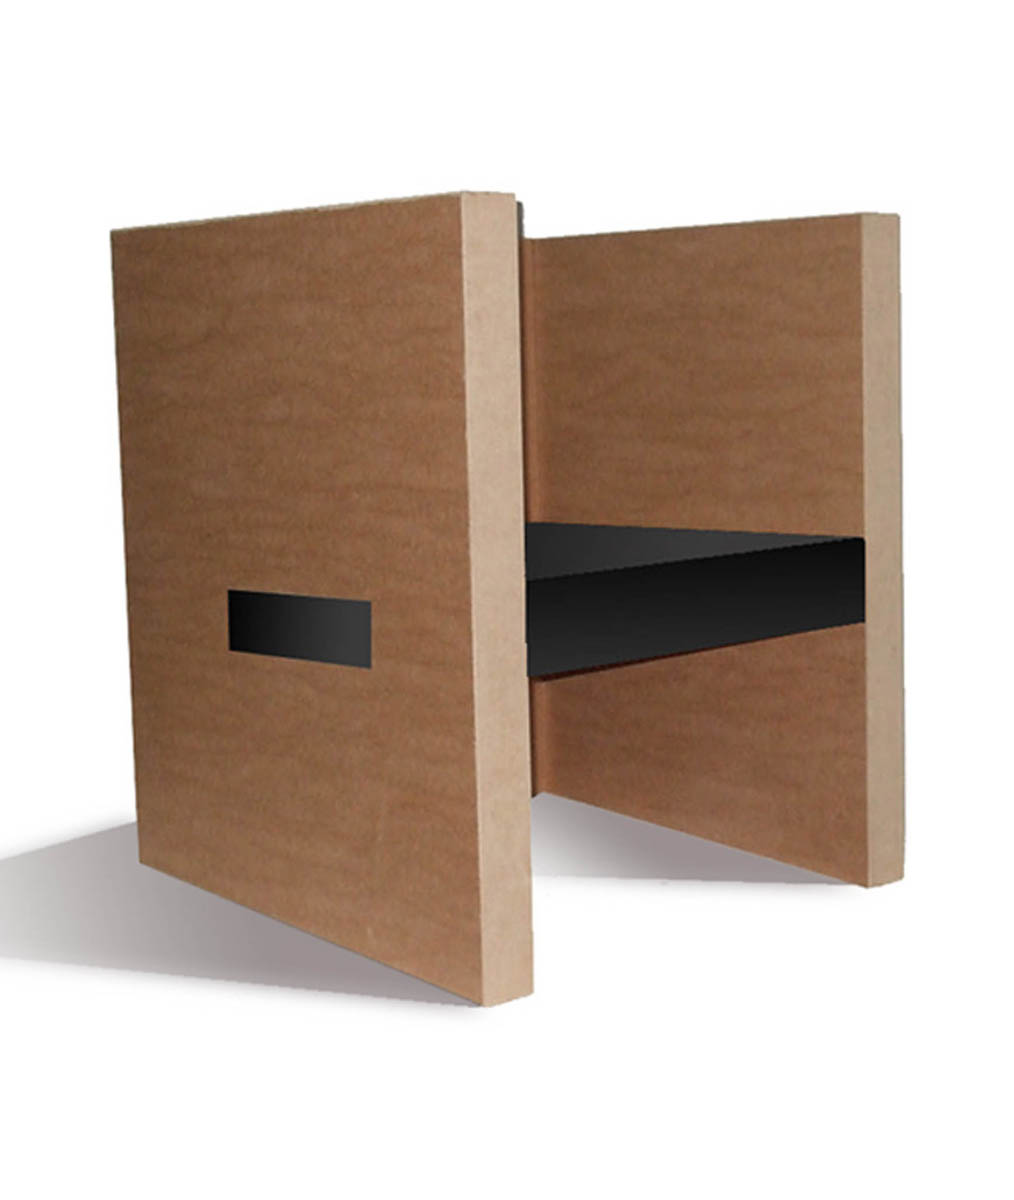 fauteuil de bureau chauffeuse en carton alv olaire cube adulte. Black Bedroom Furniture Sets. Home Design Ideas